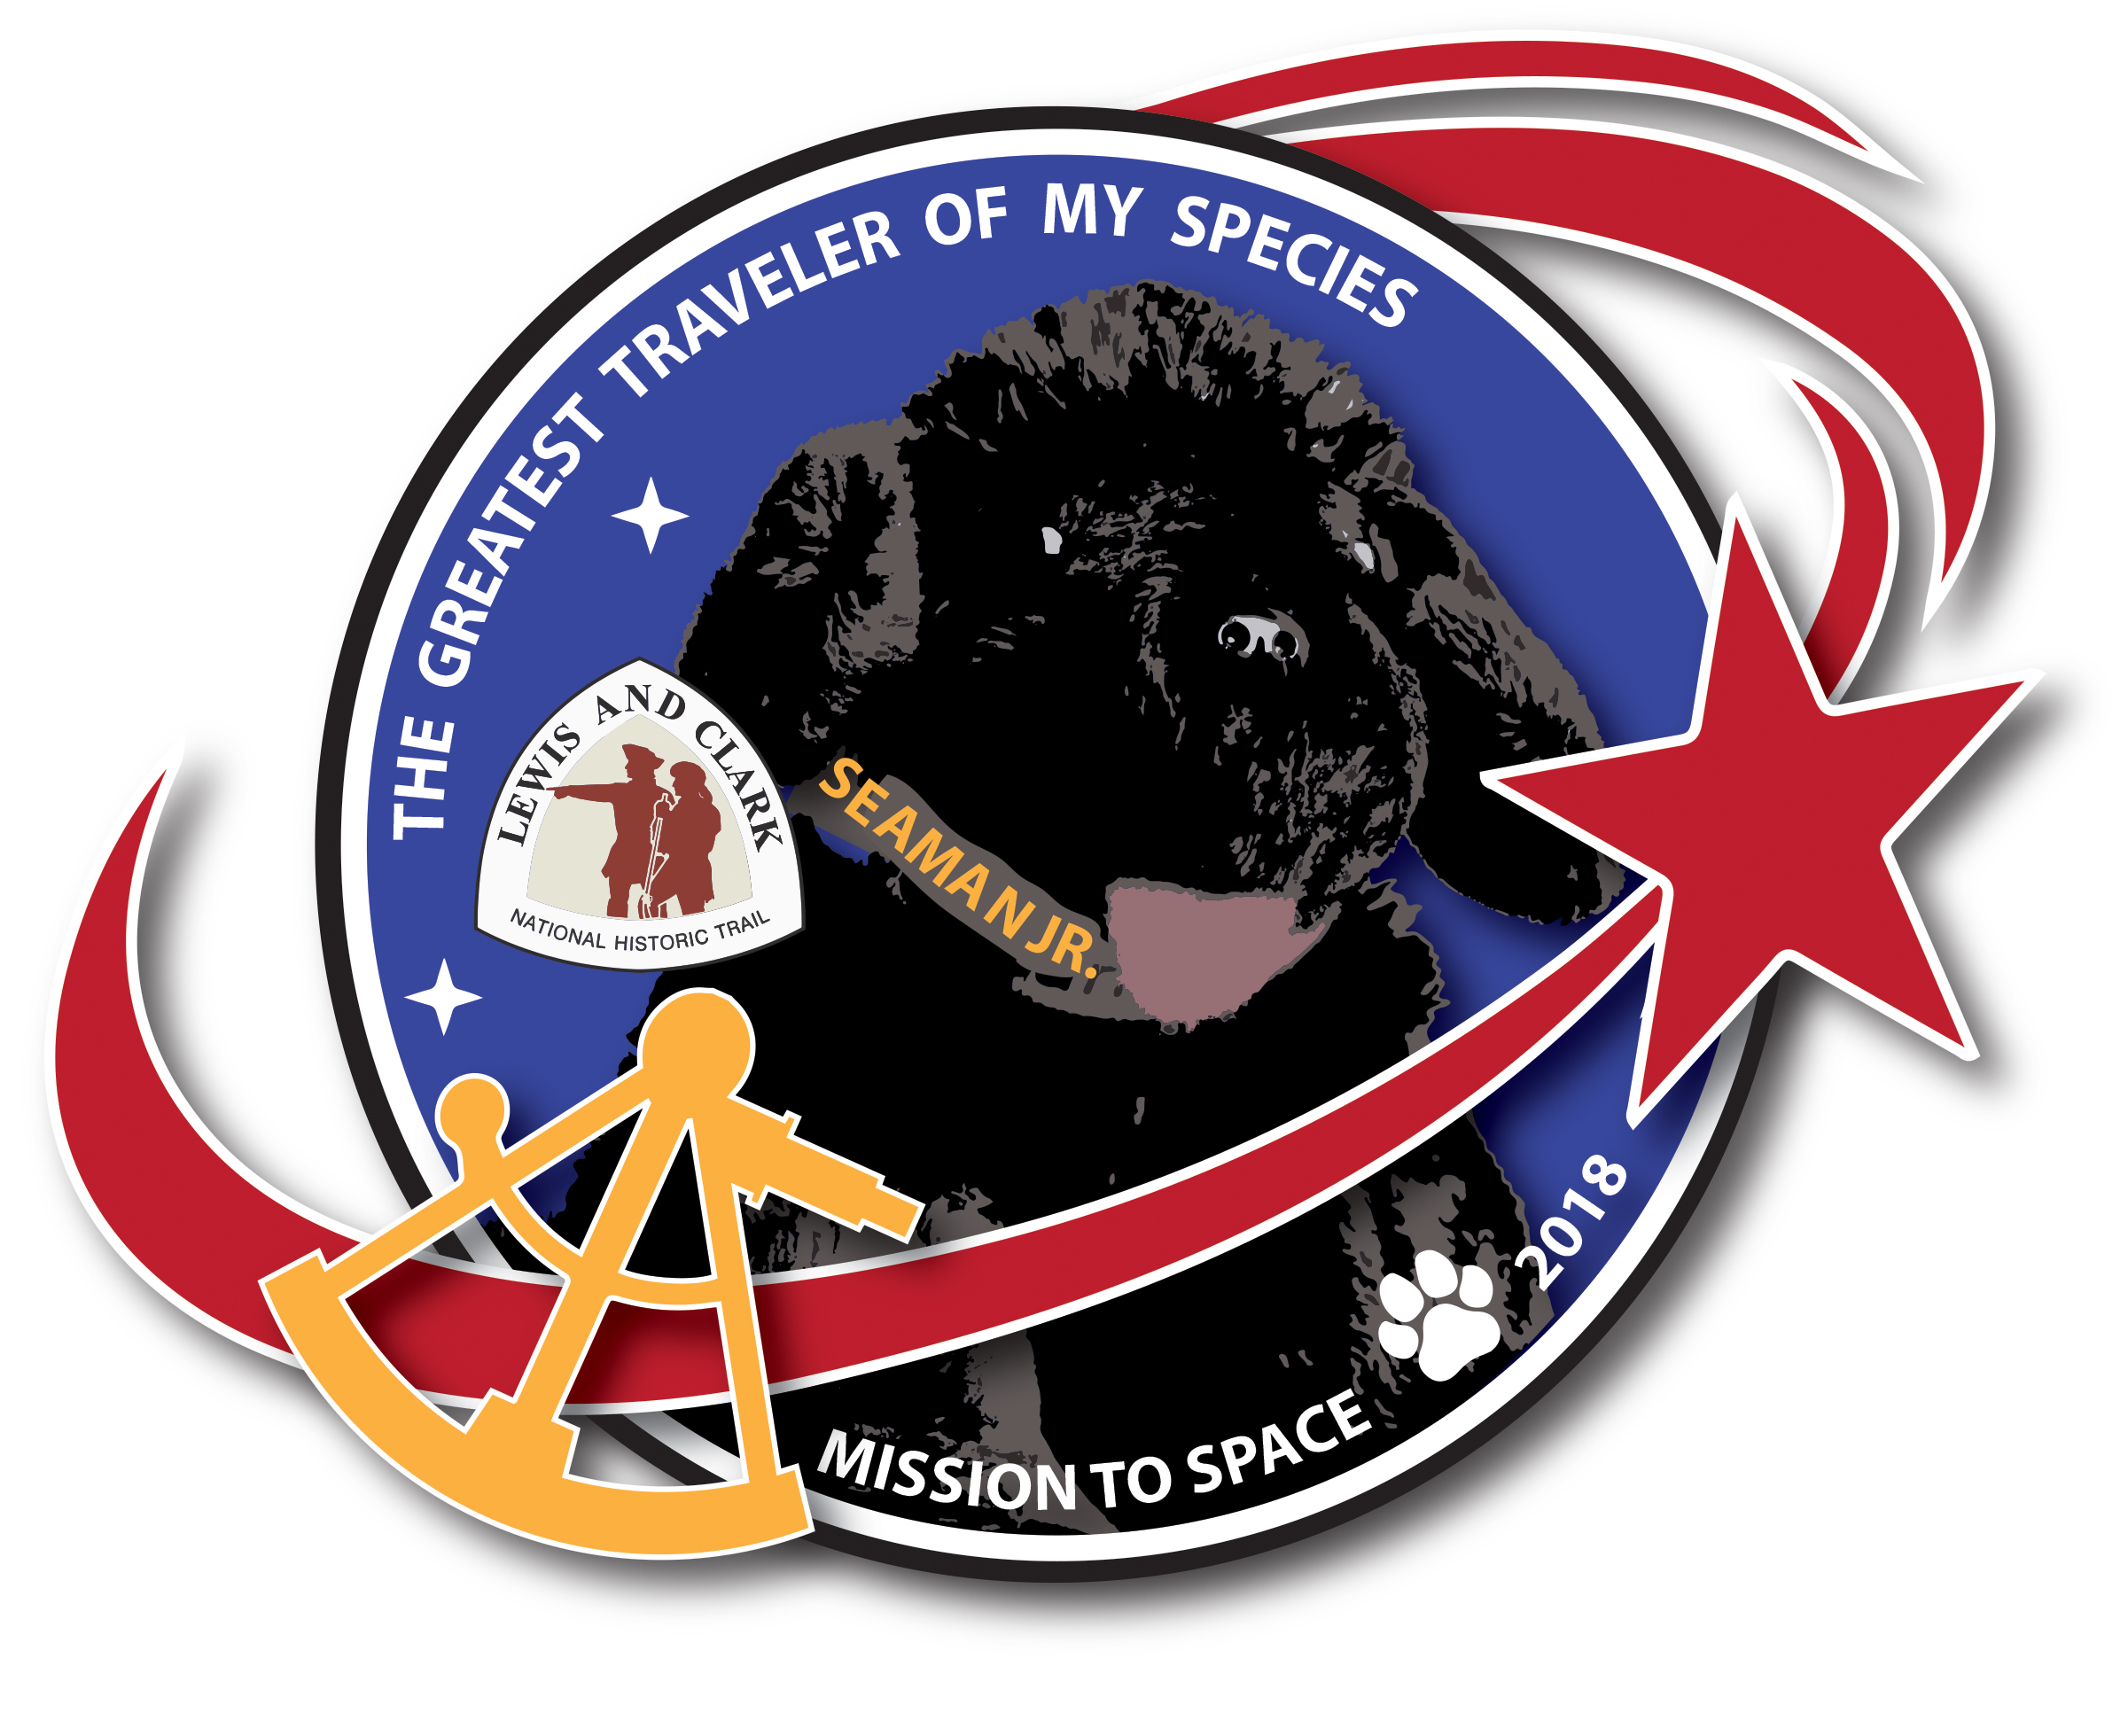 toy dog in logo for space flight